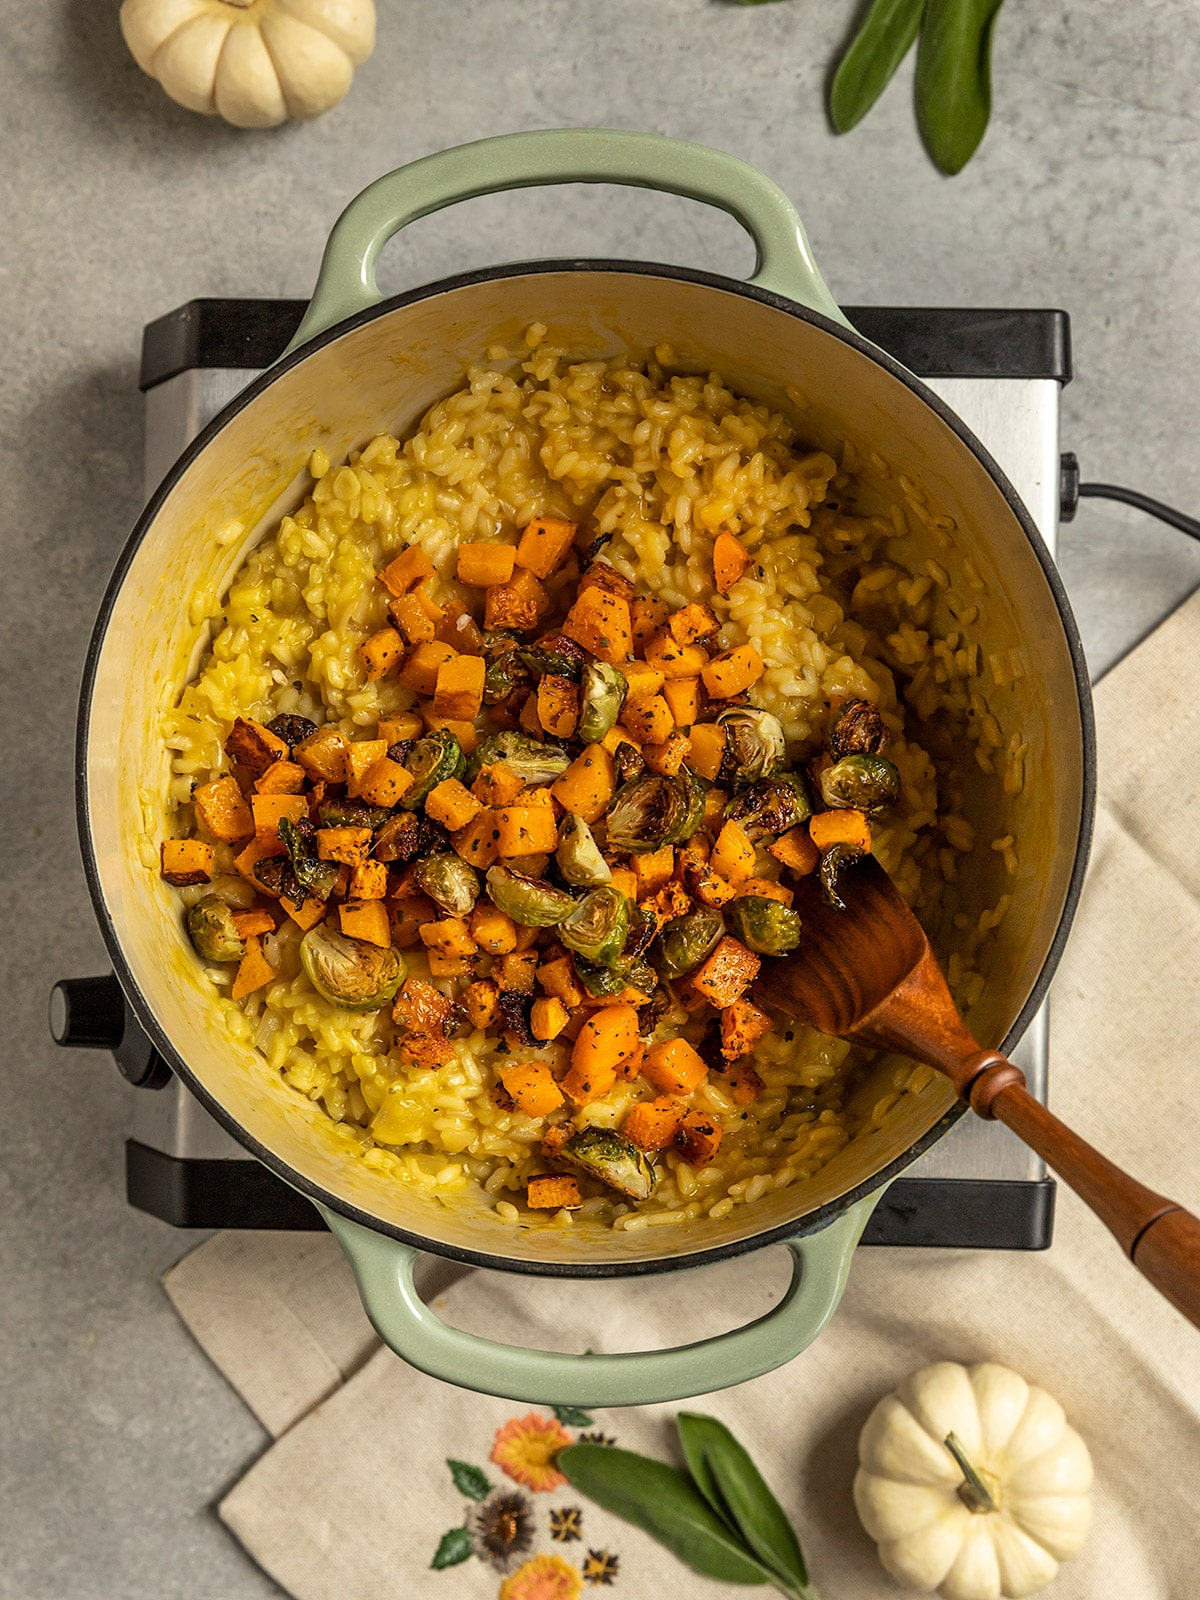 a pot of risotto rice with brussels sprouts and butternut squash added on tops